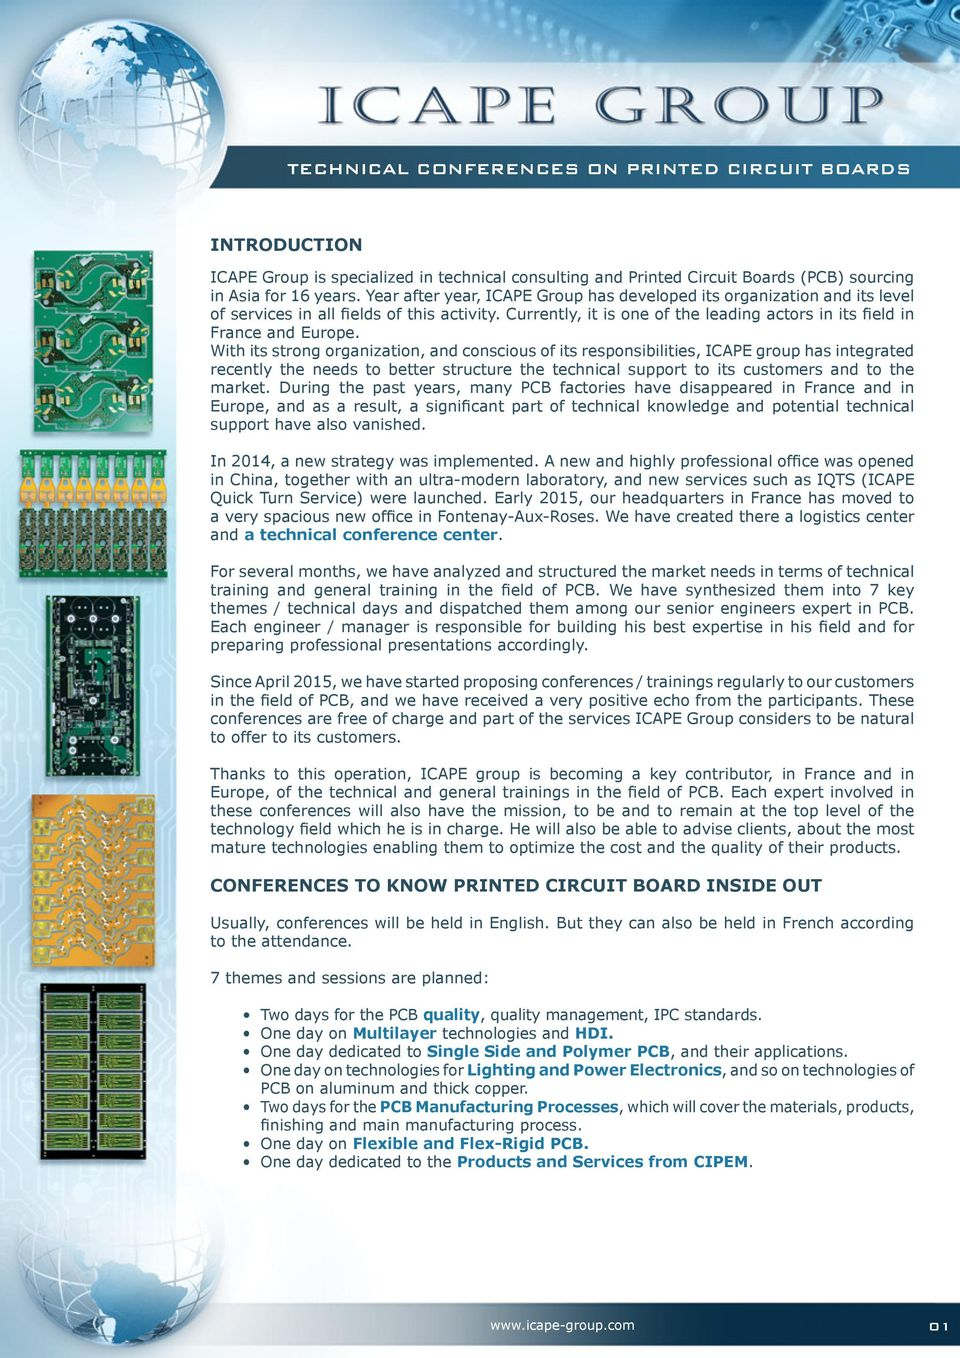 Technical Conferences On Printed Circuit Boards Pdf Image Custom Board Assembly Process Rohs Compliant With Its Strong Organization And Conscious Of Responsibilities Icape Group Has Integrated Recently